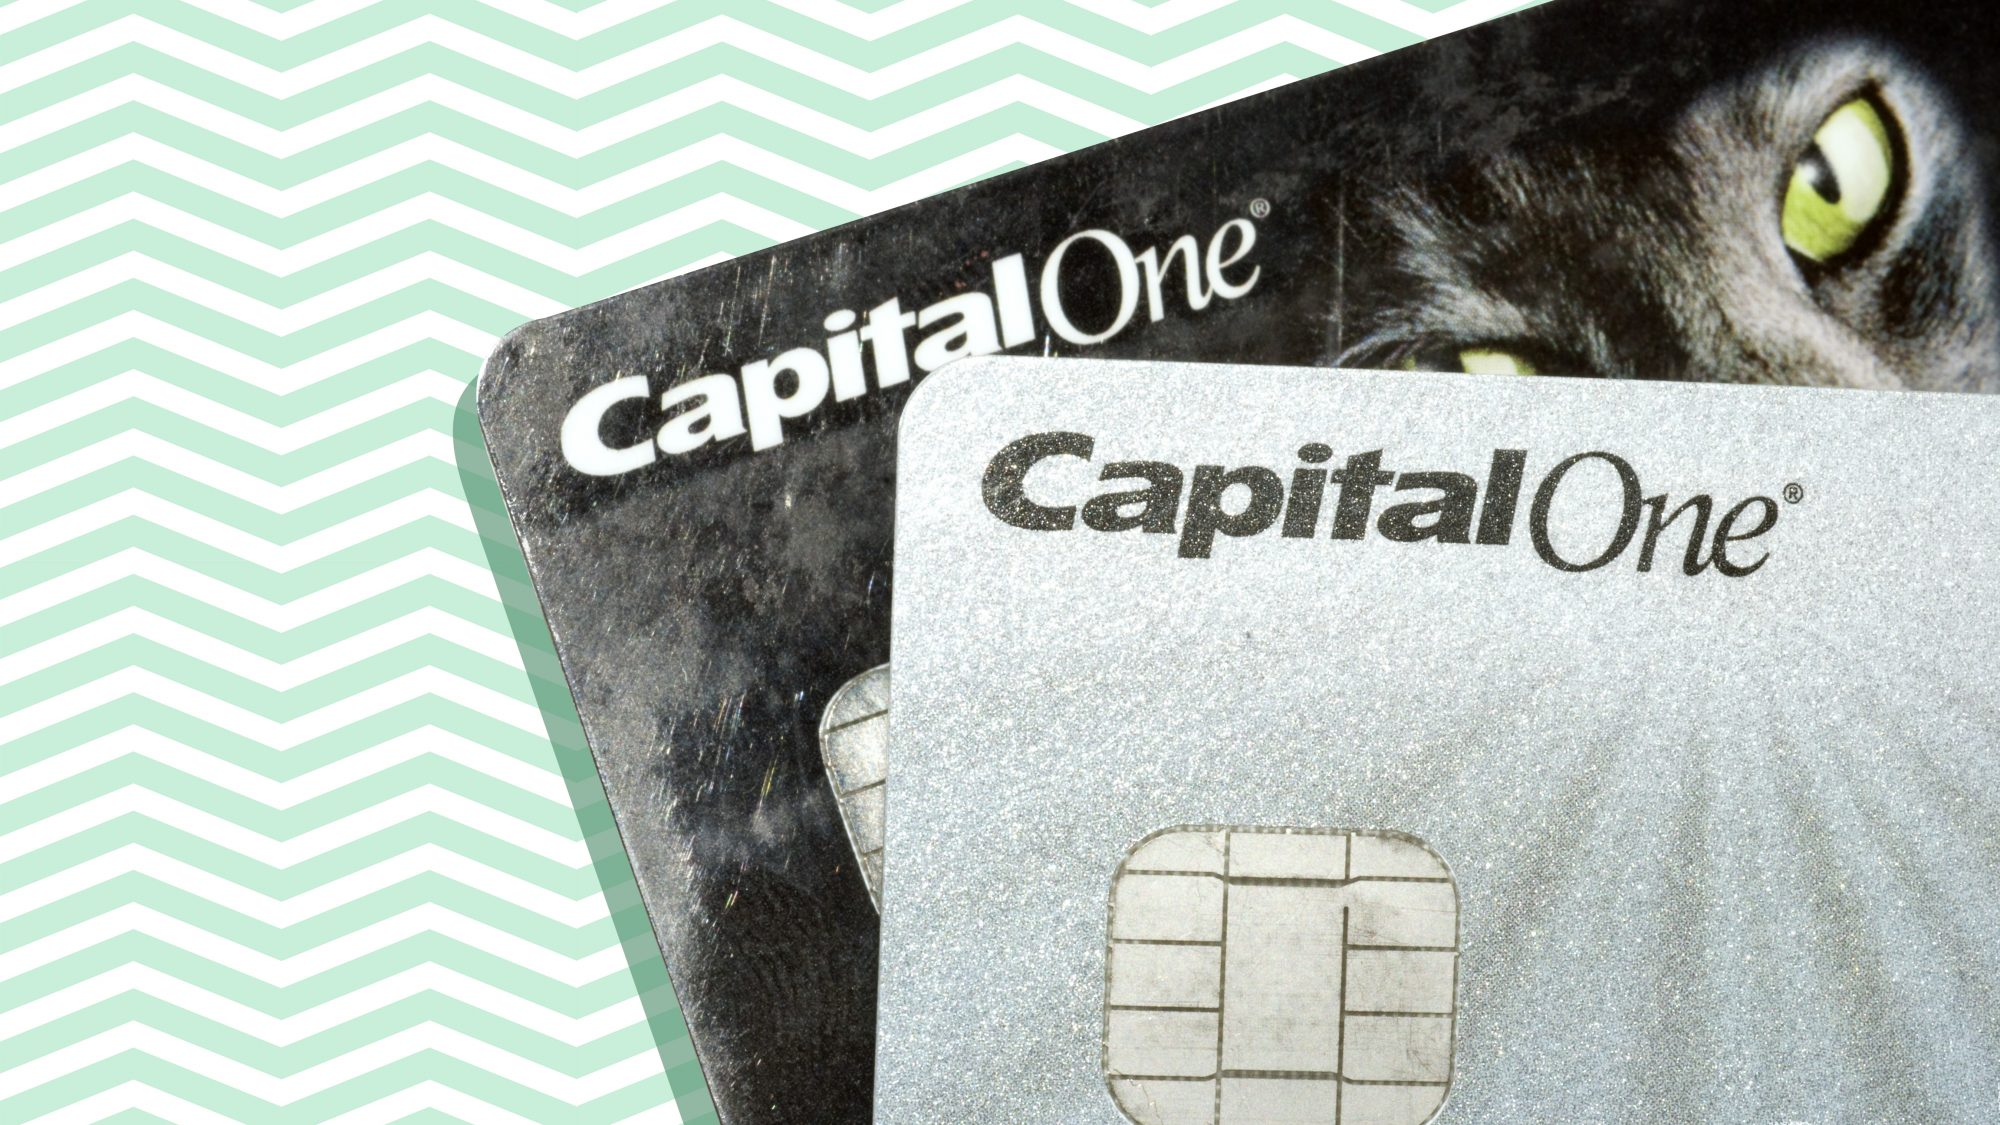 Capital One Credit Card Data Breach: How to Protect Your Credit